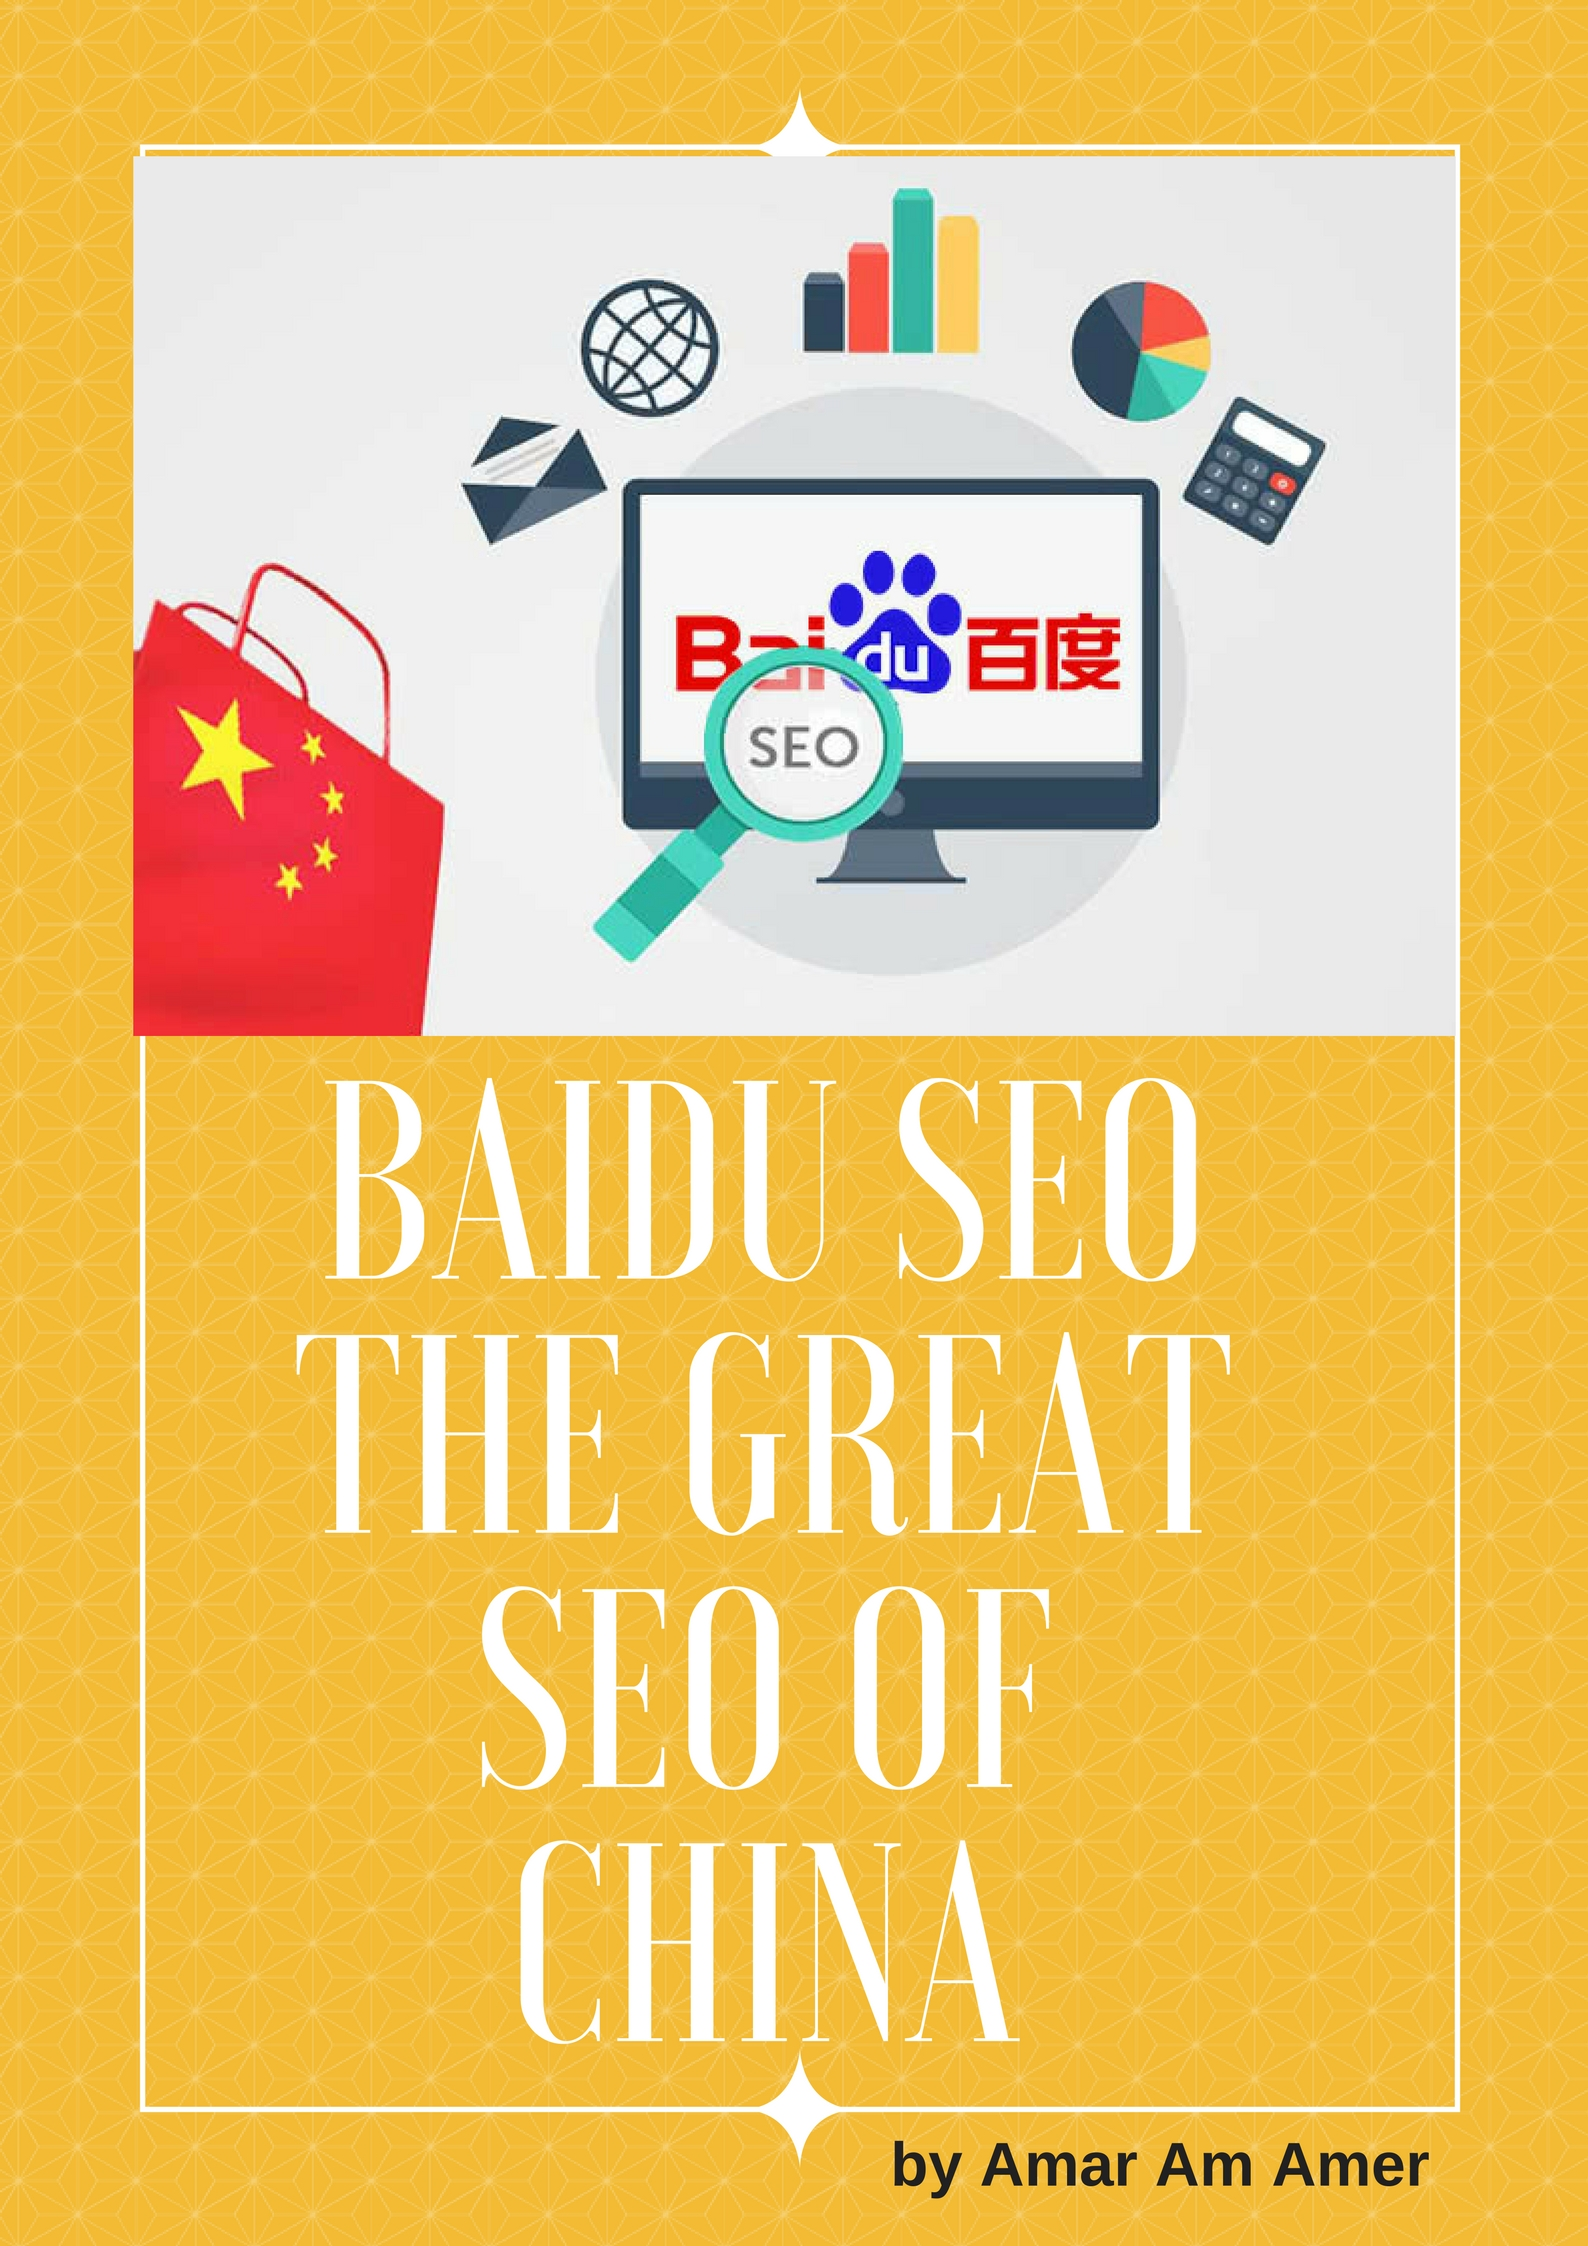 Baidu SEO: The Great seo of China